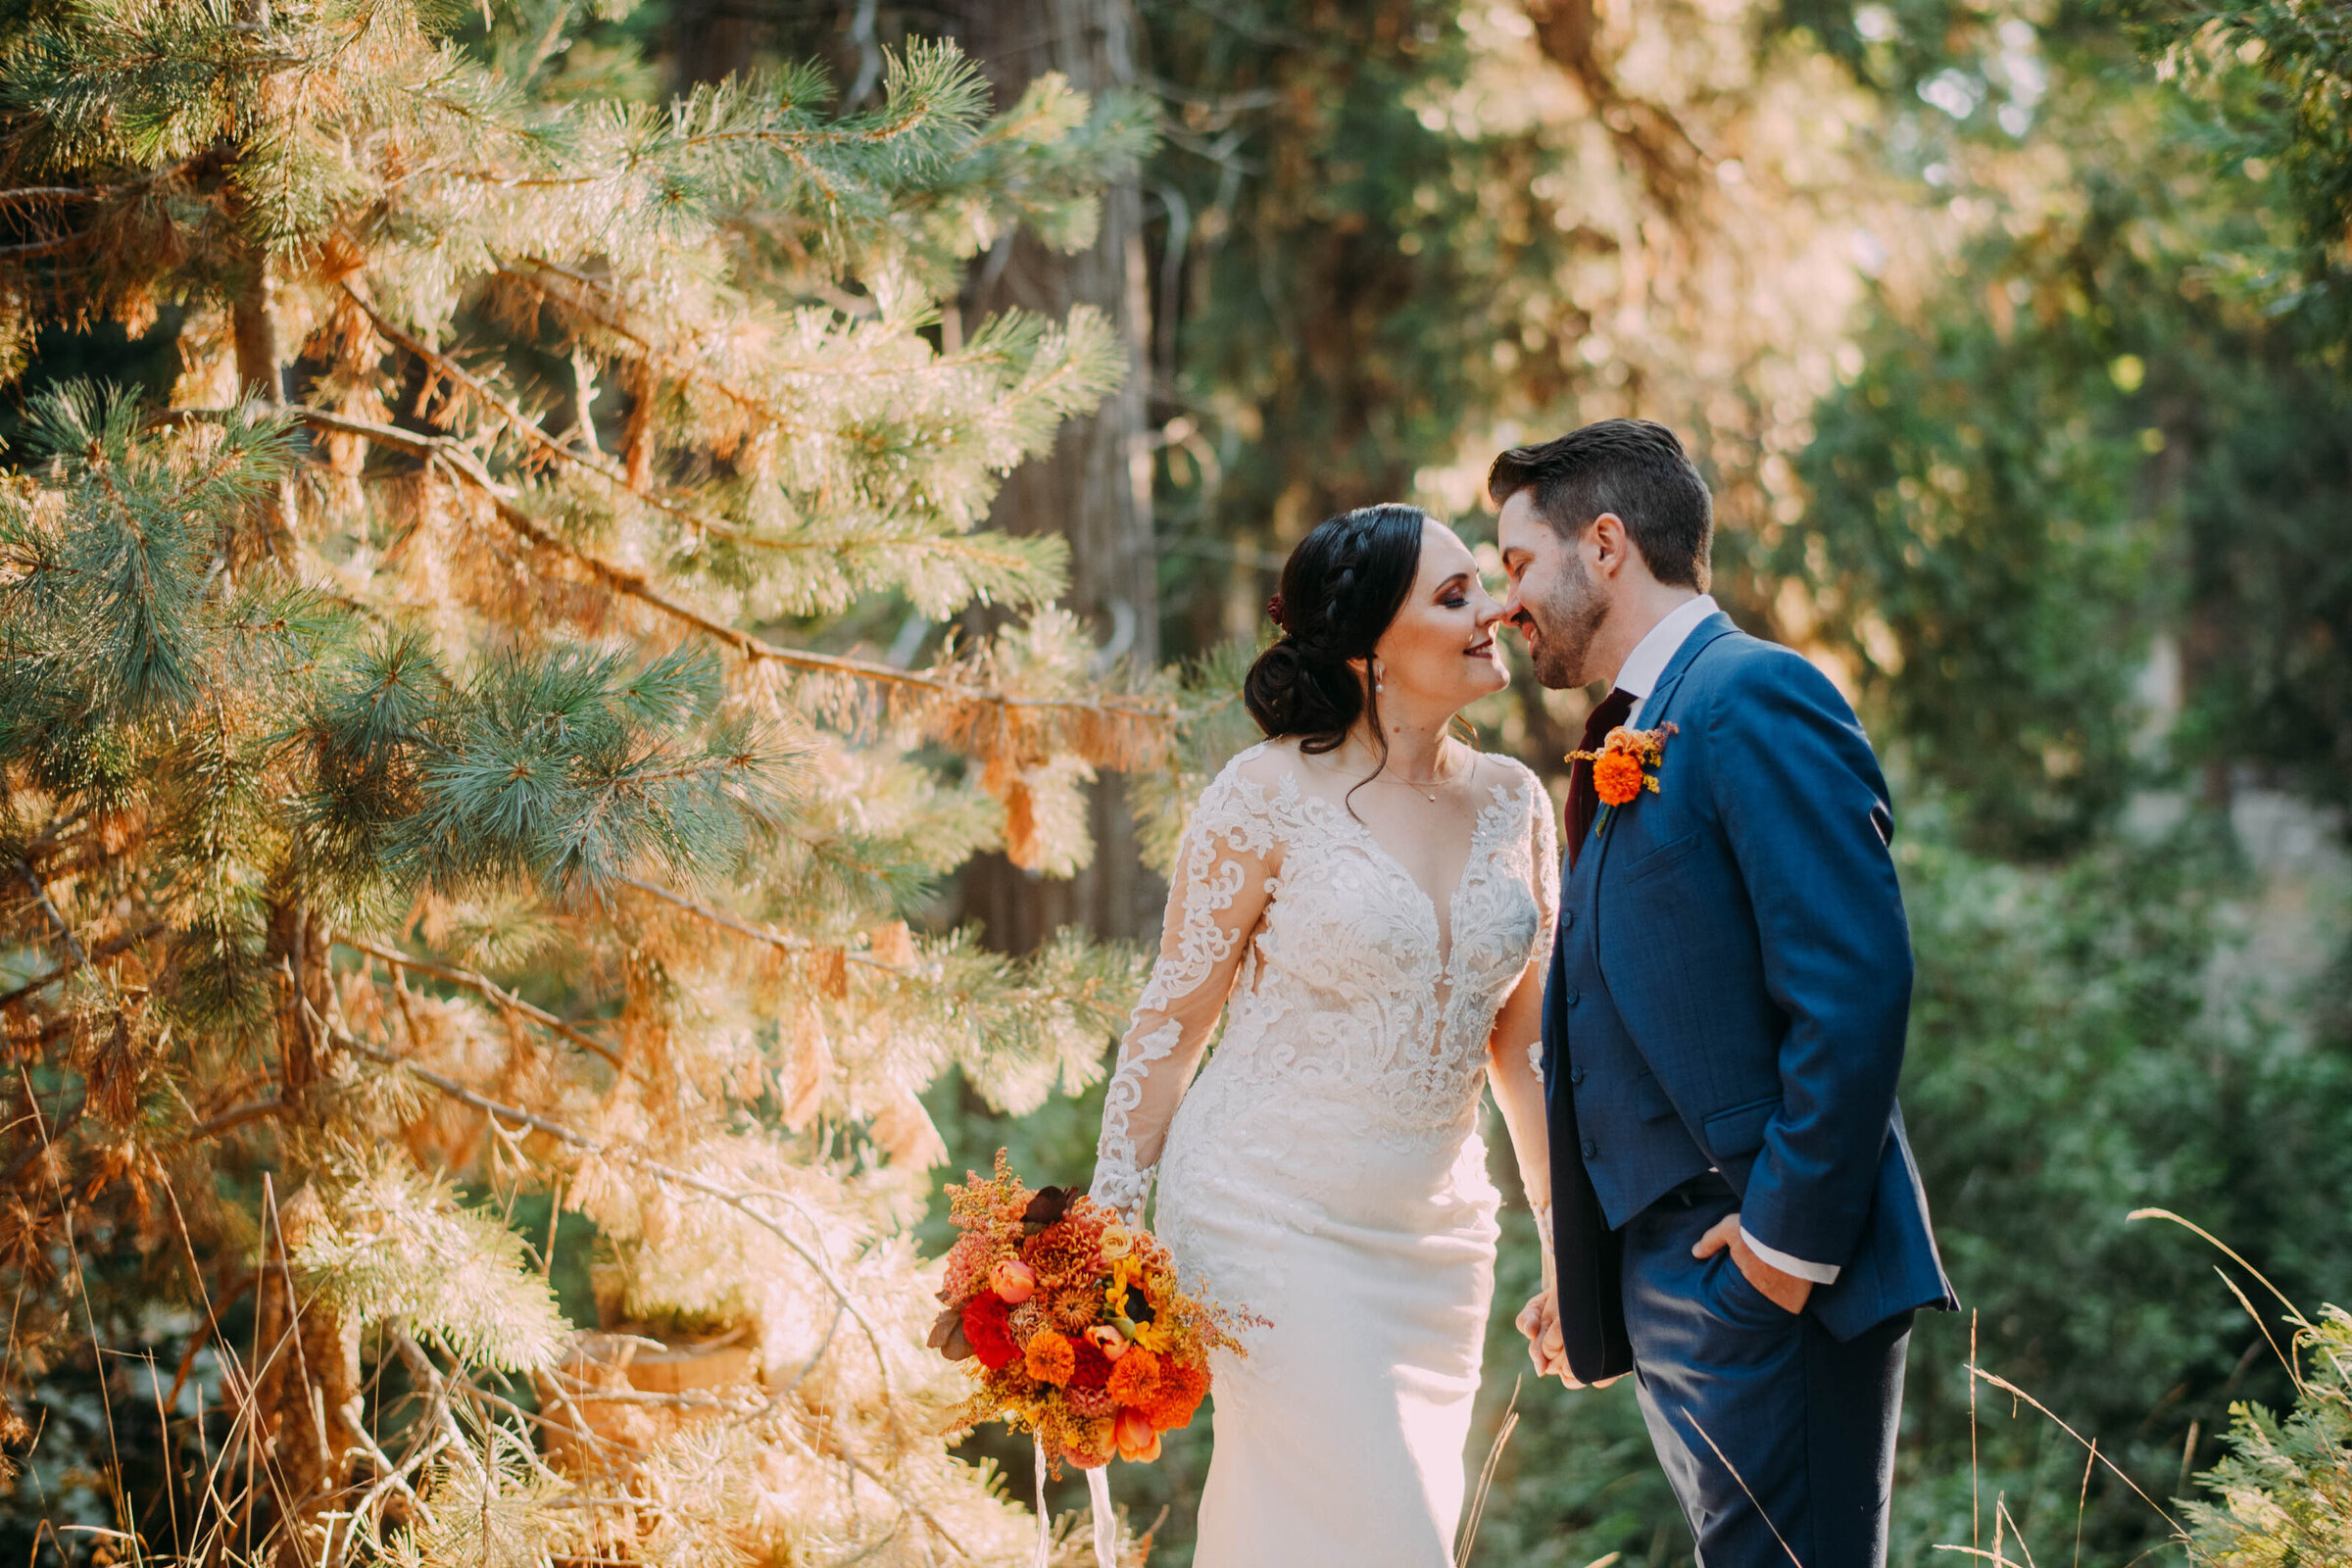 bride holding orange red and brown bouqet wearing white wedding dress leans in to kiss groom wearing blue tux and orange boutonnière in front of a pine tree shot by wedding photographer in philadelphia alex medvick